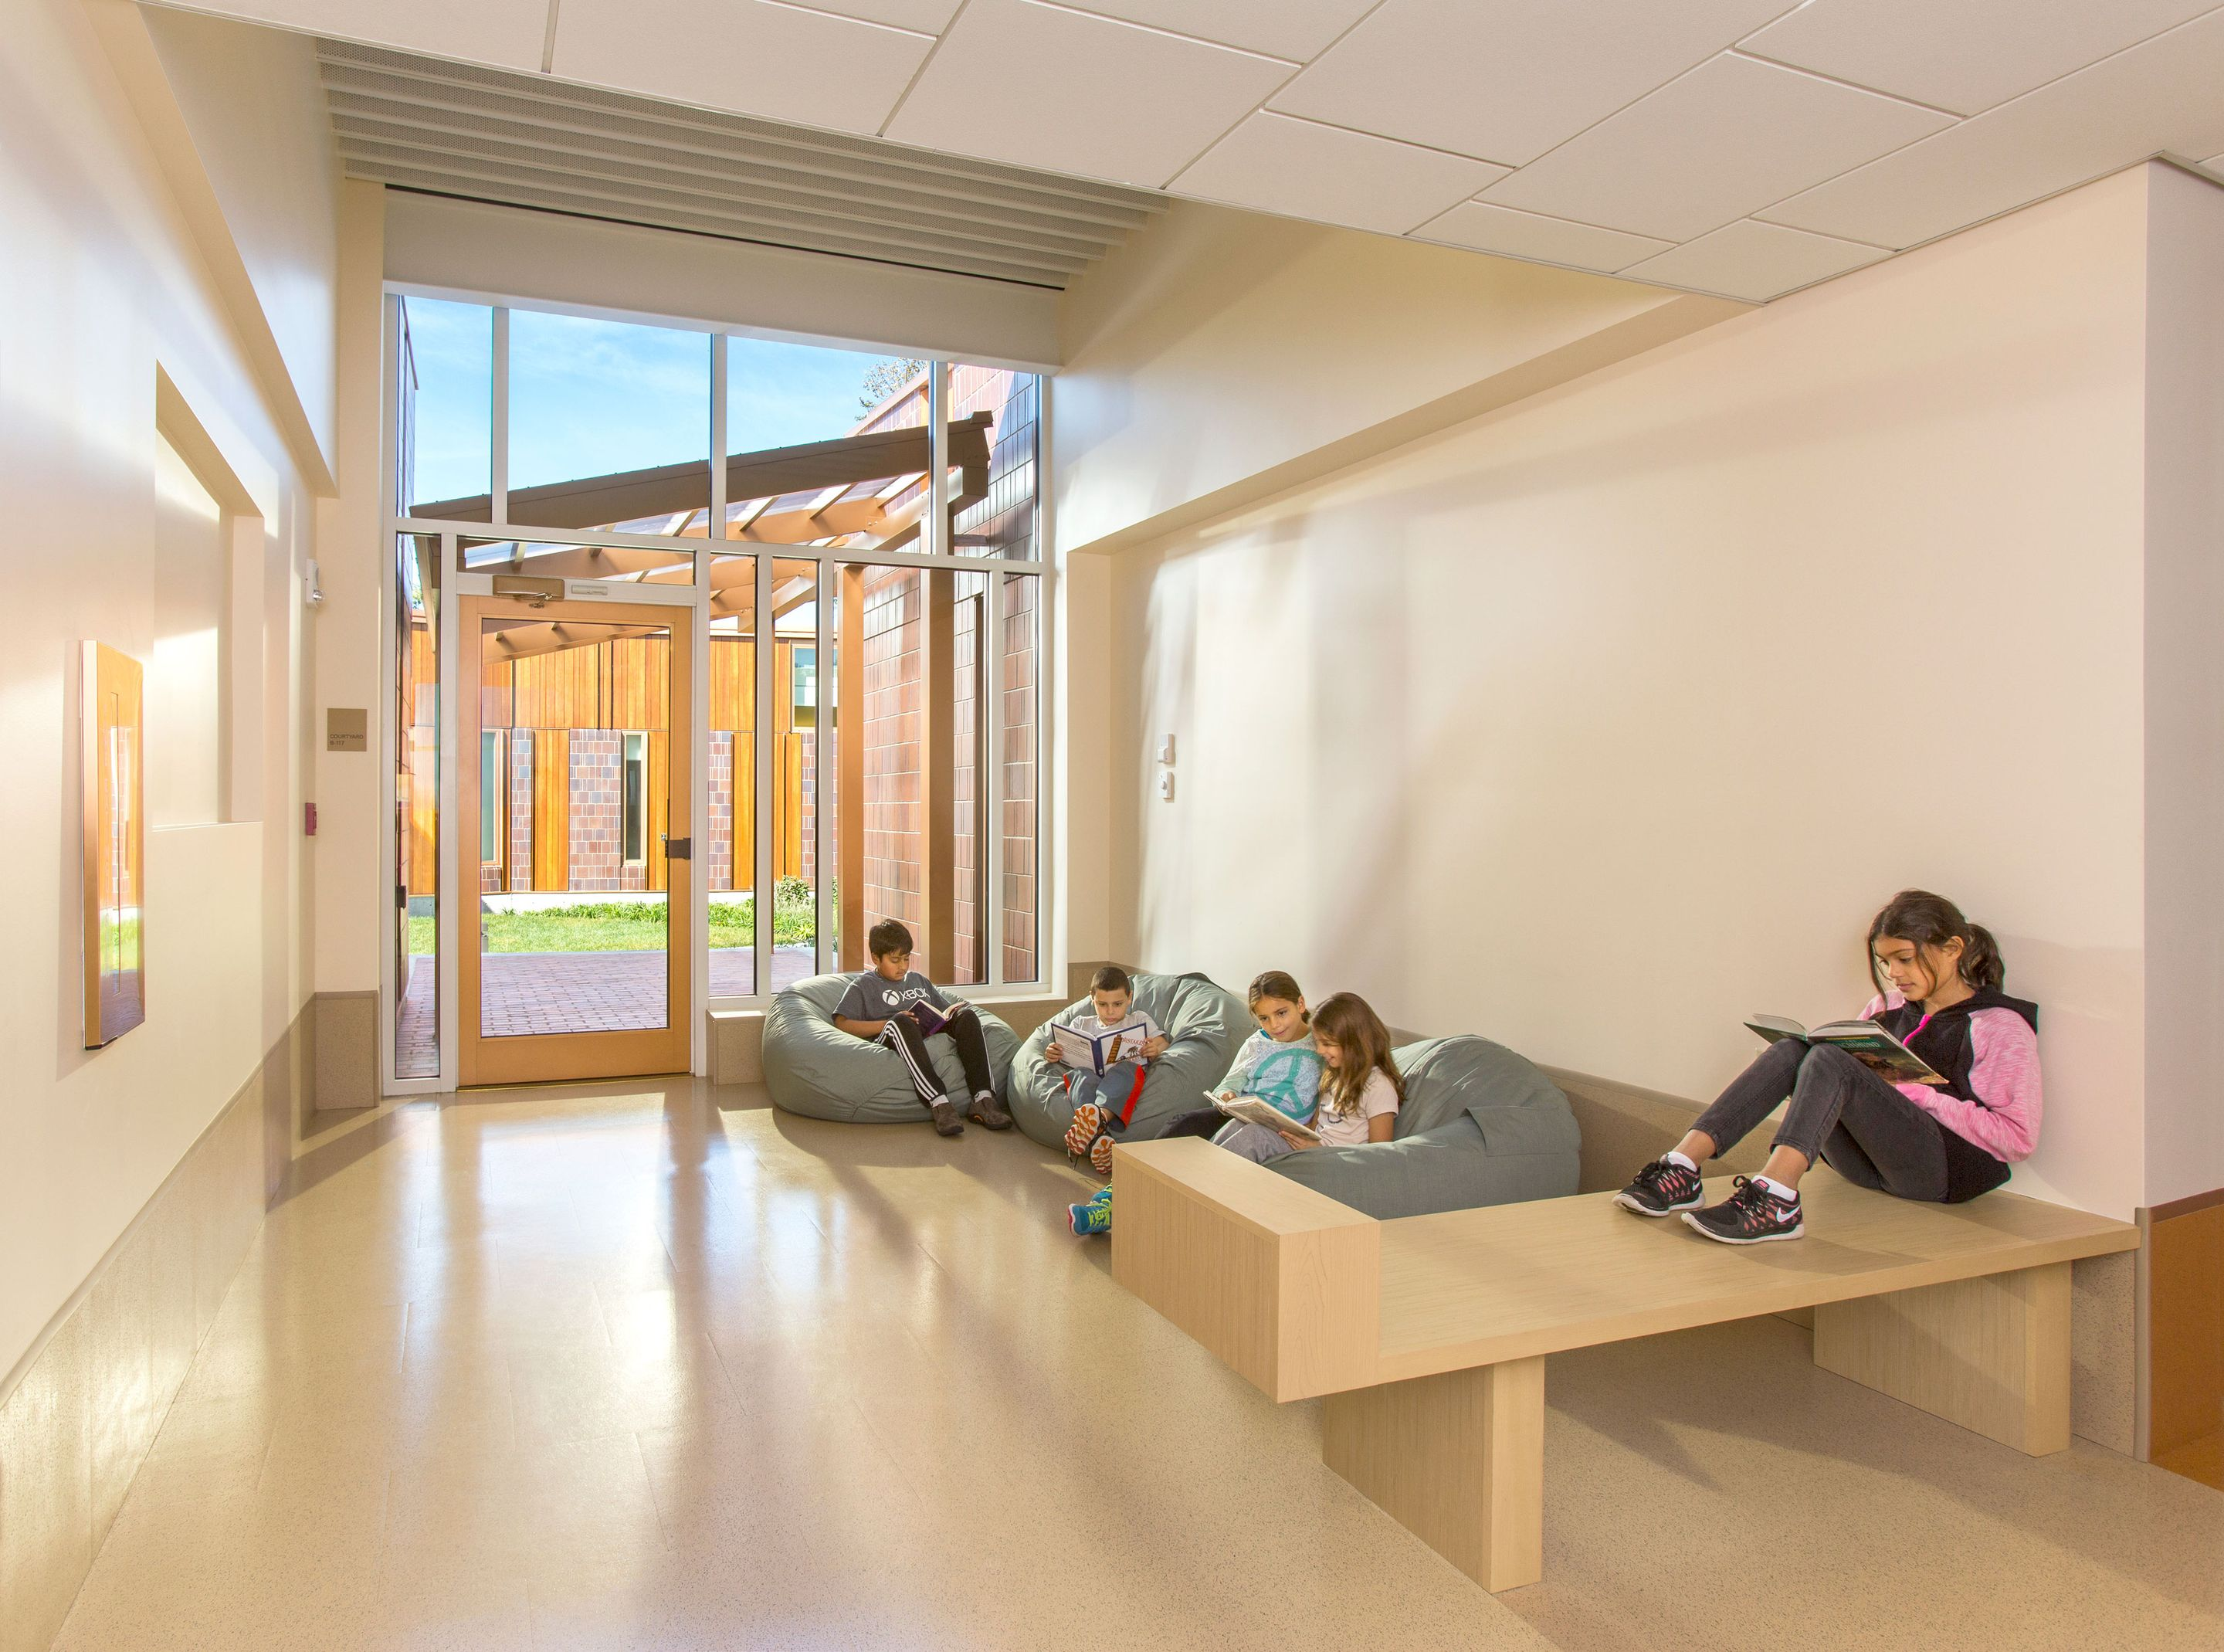 The Architecture Of Ideal Learning Environments Edutopia